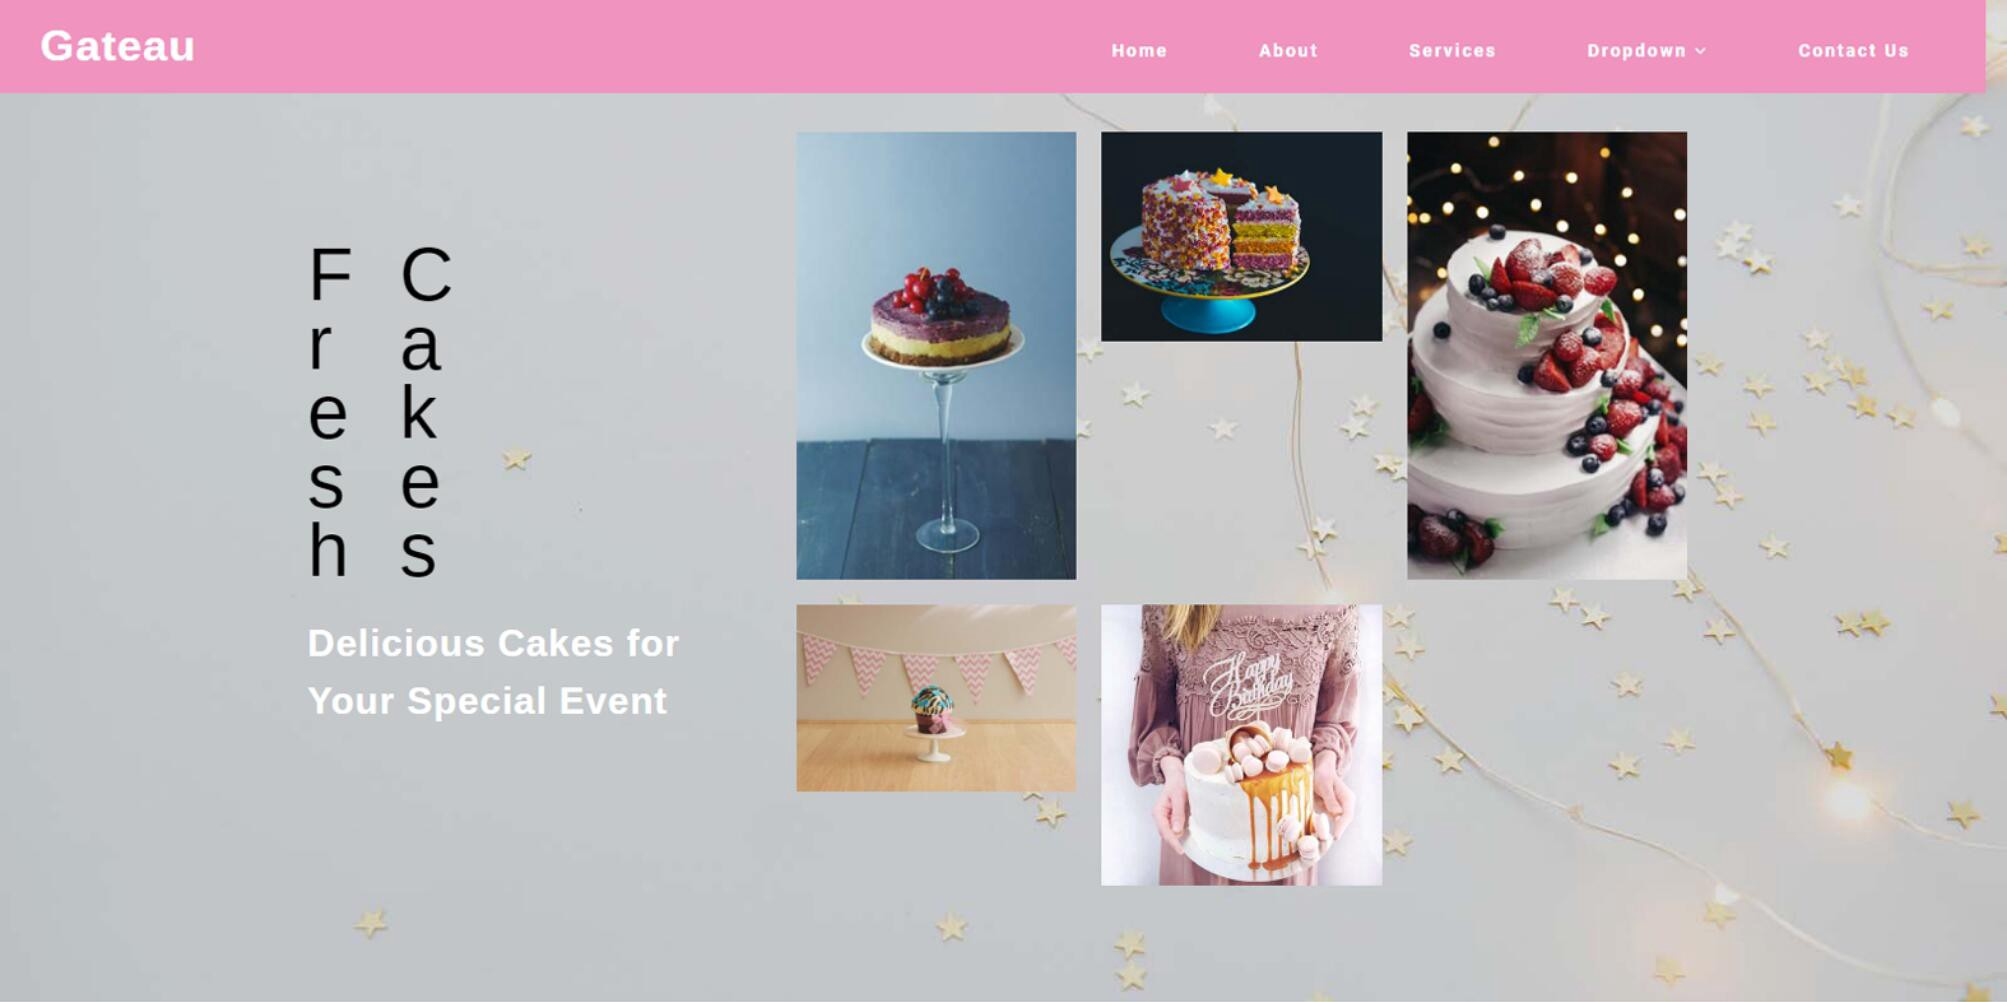 20 Best Free Responsive Mockups for Inspiration in 2019 [PSD